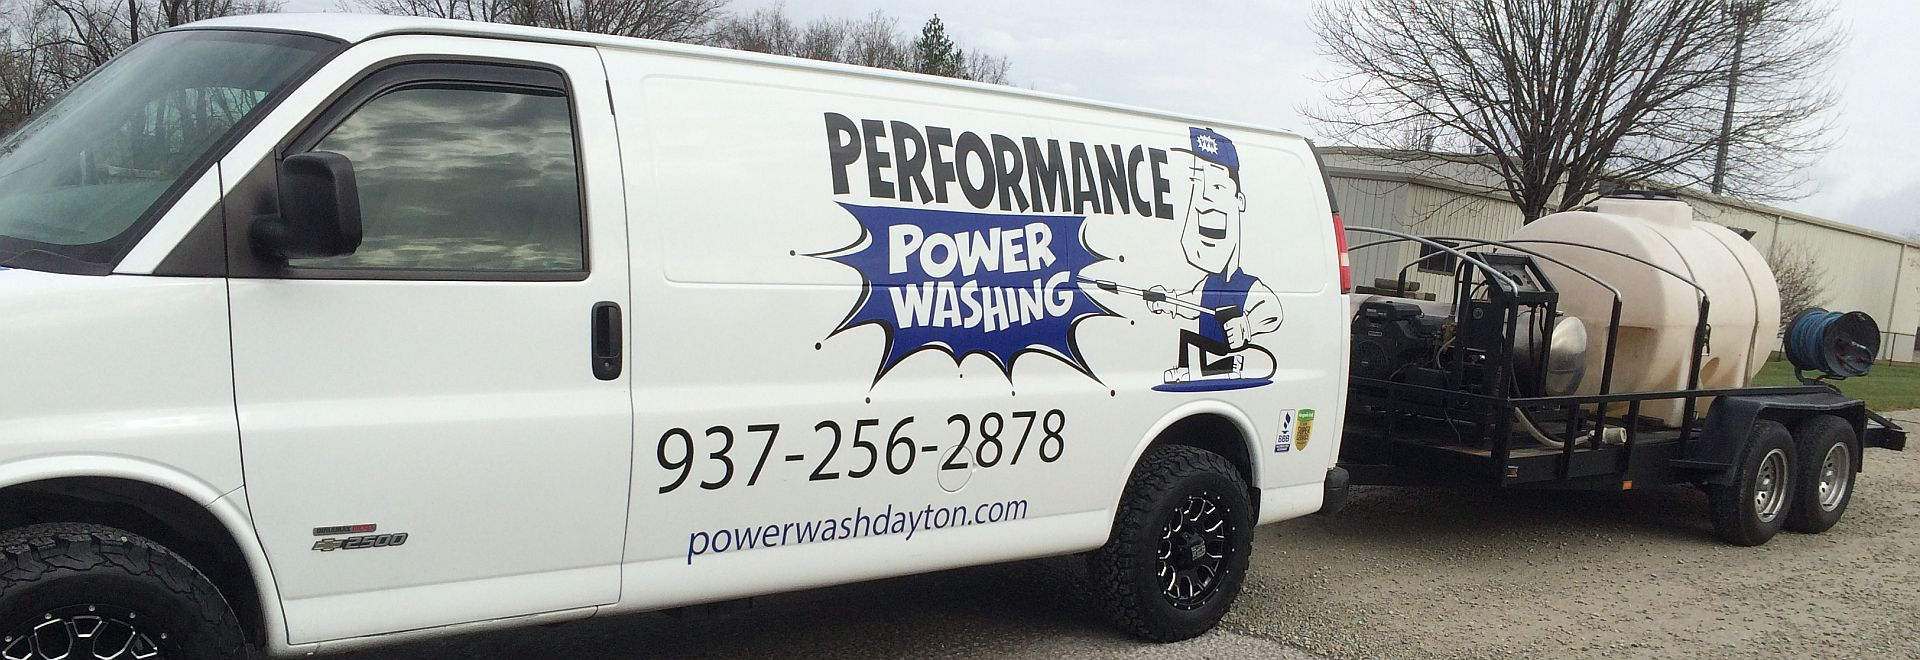 Performance Power Washing Services